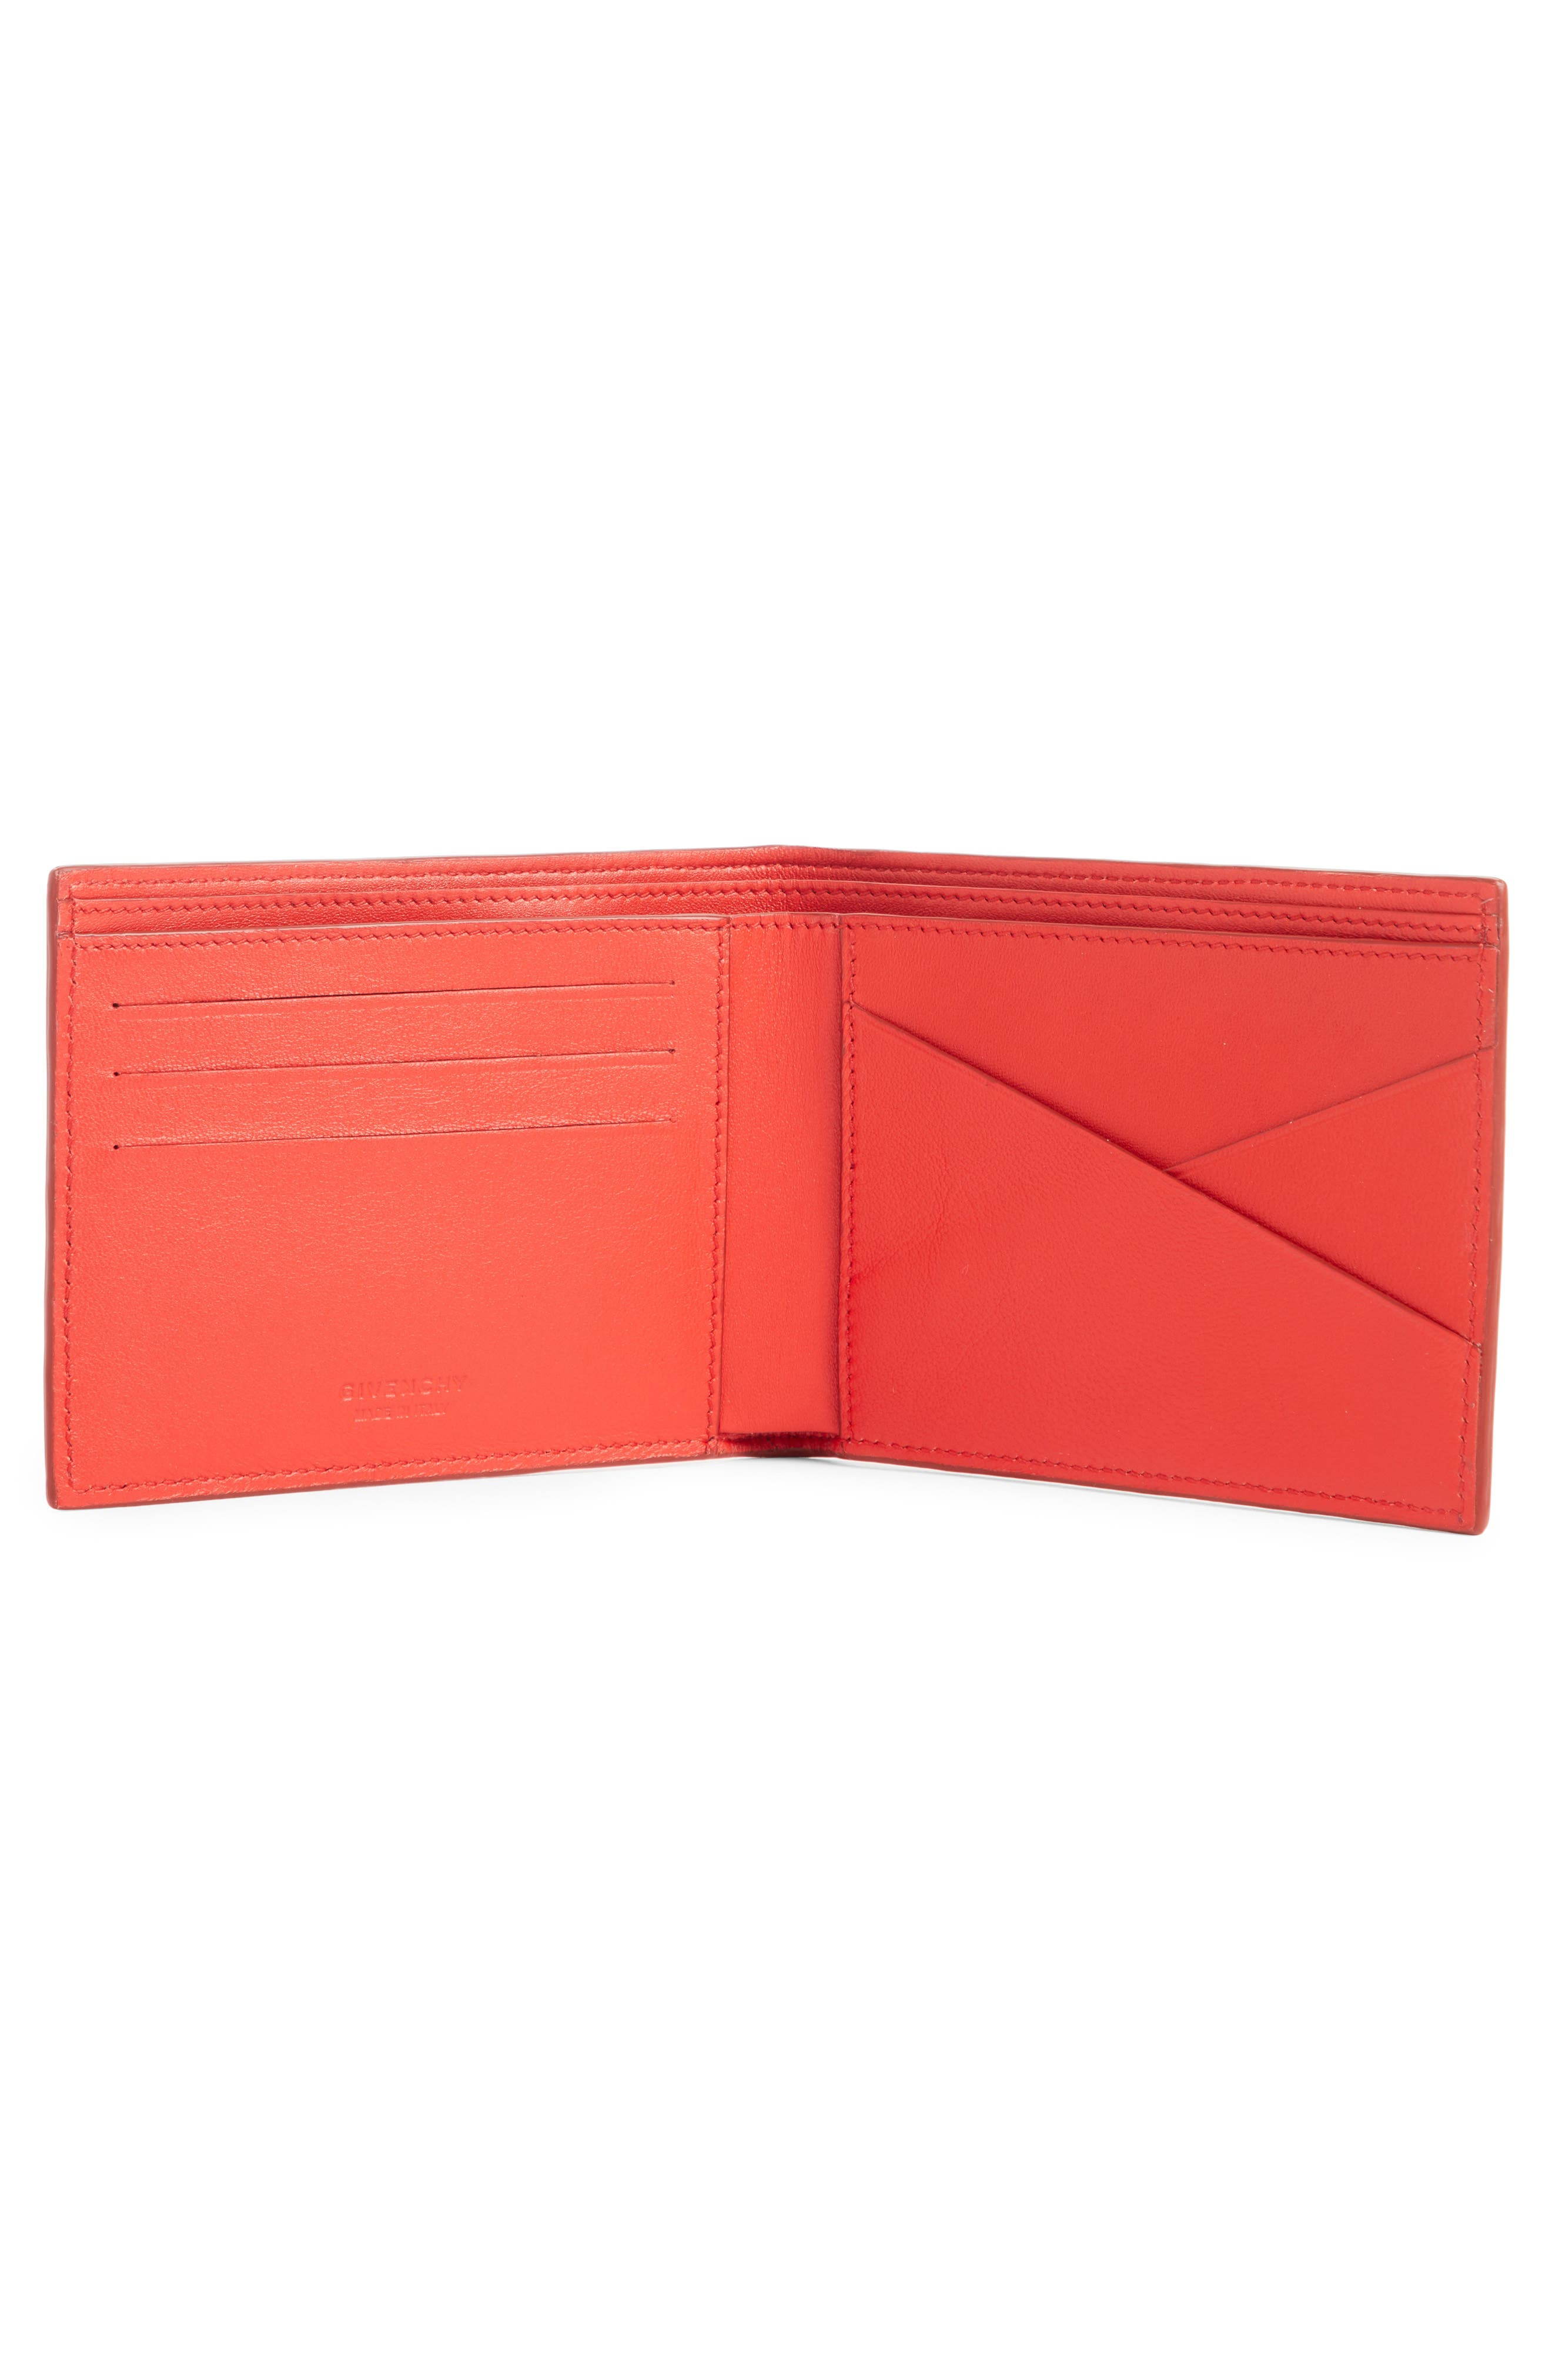 Embossed 4G Leather Bifold Wallet,                             Alternate thumbnail 2, color,                             RED